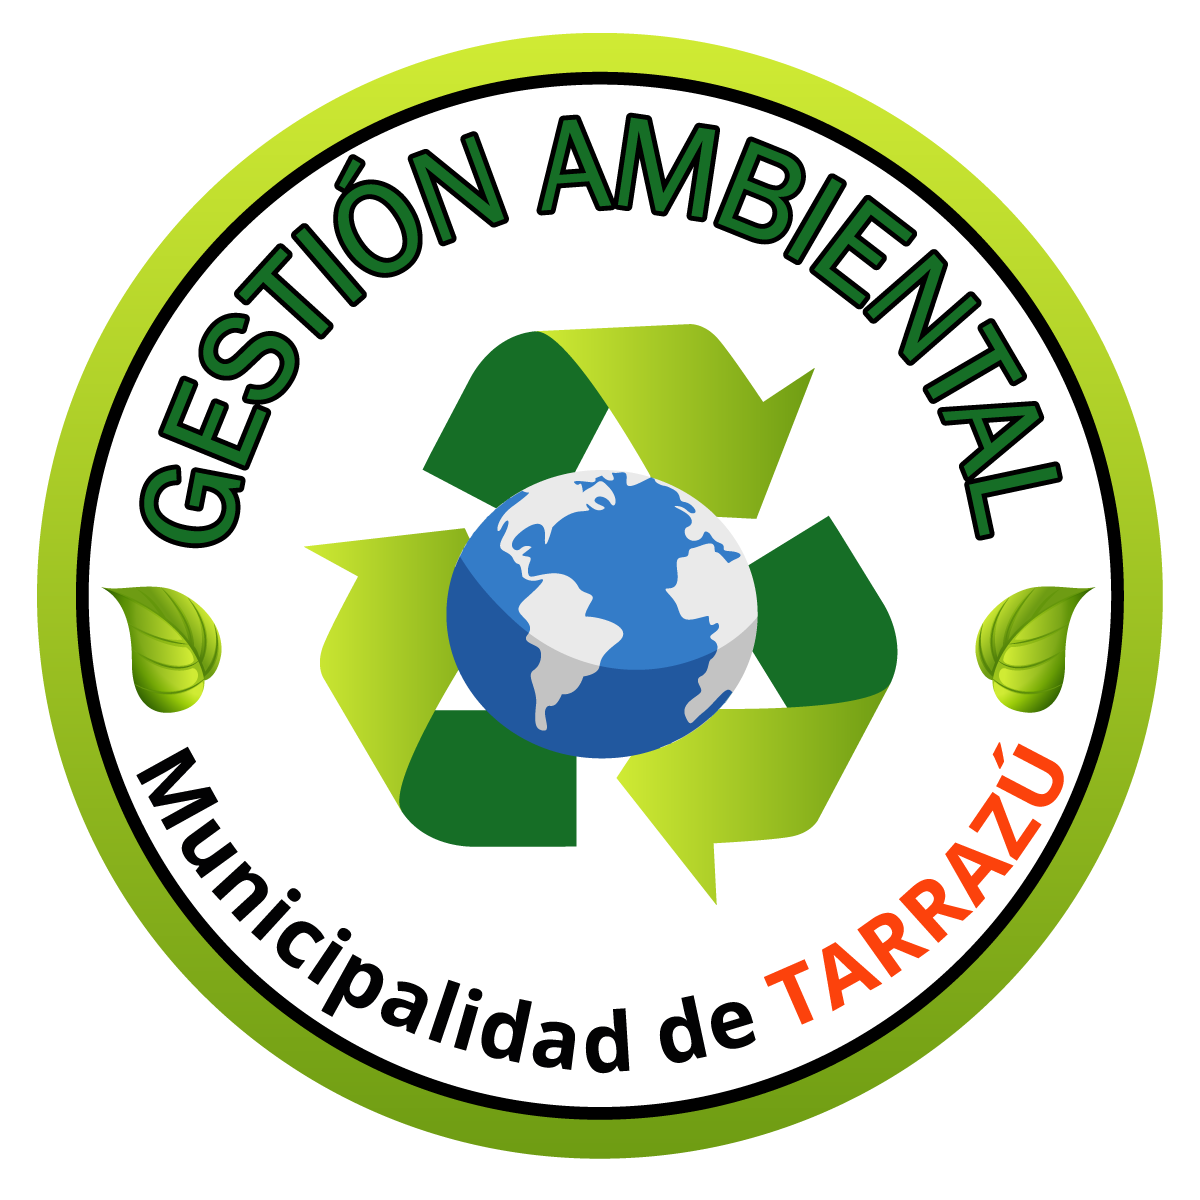 GESTION AMBIENTAL LOGO